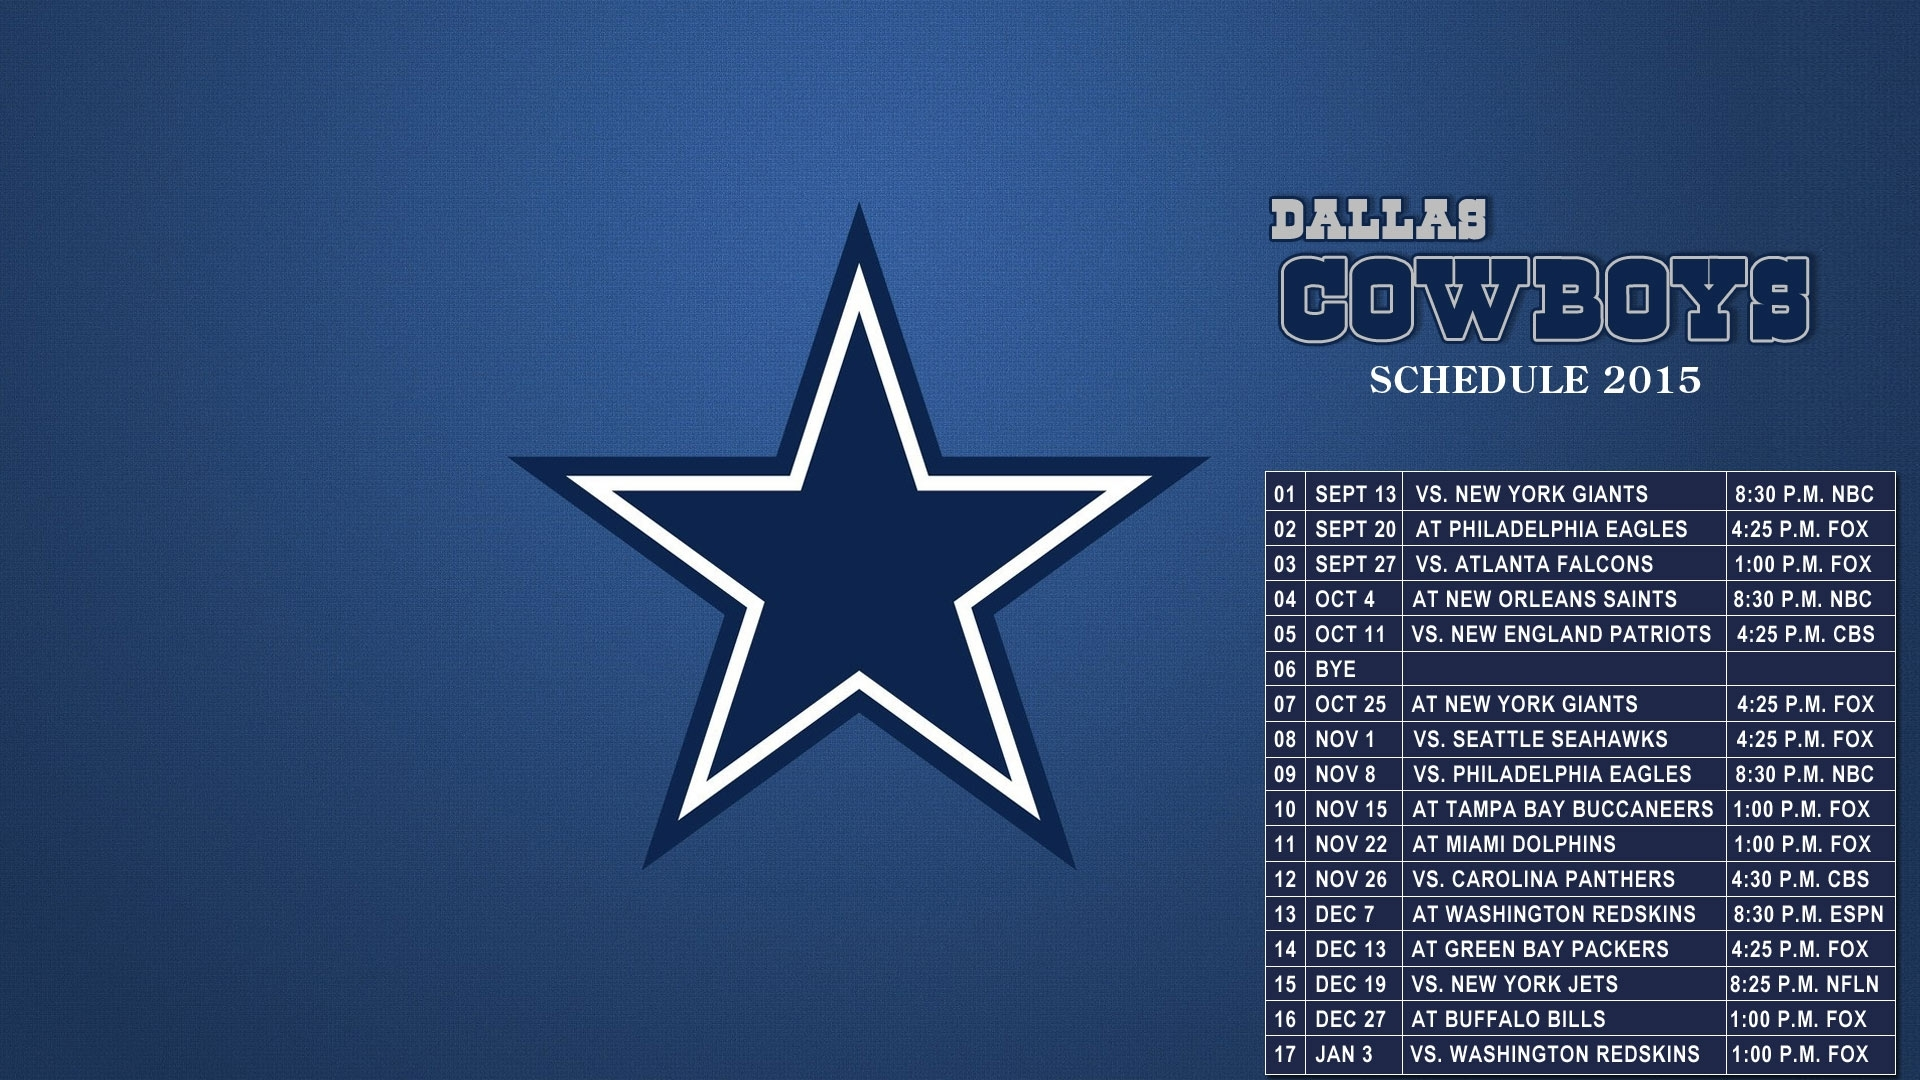 dallas cowboys wallpaper schedule gallery (64+ images)